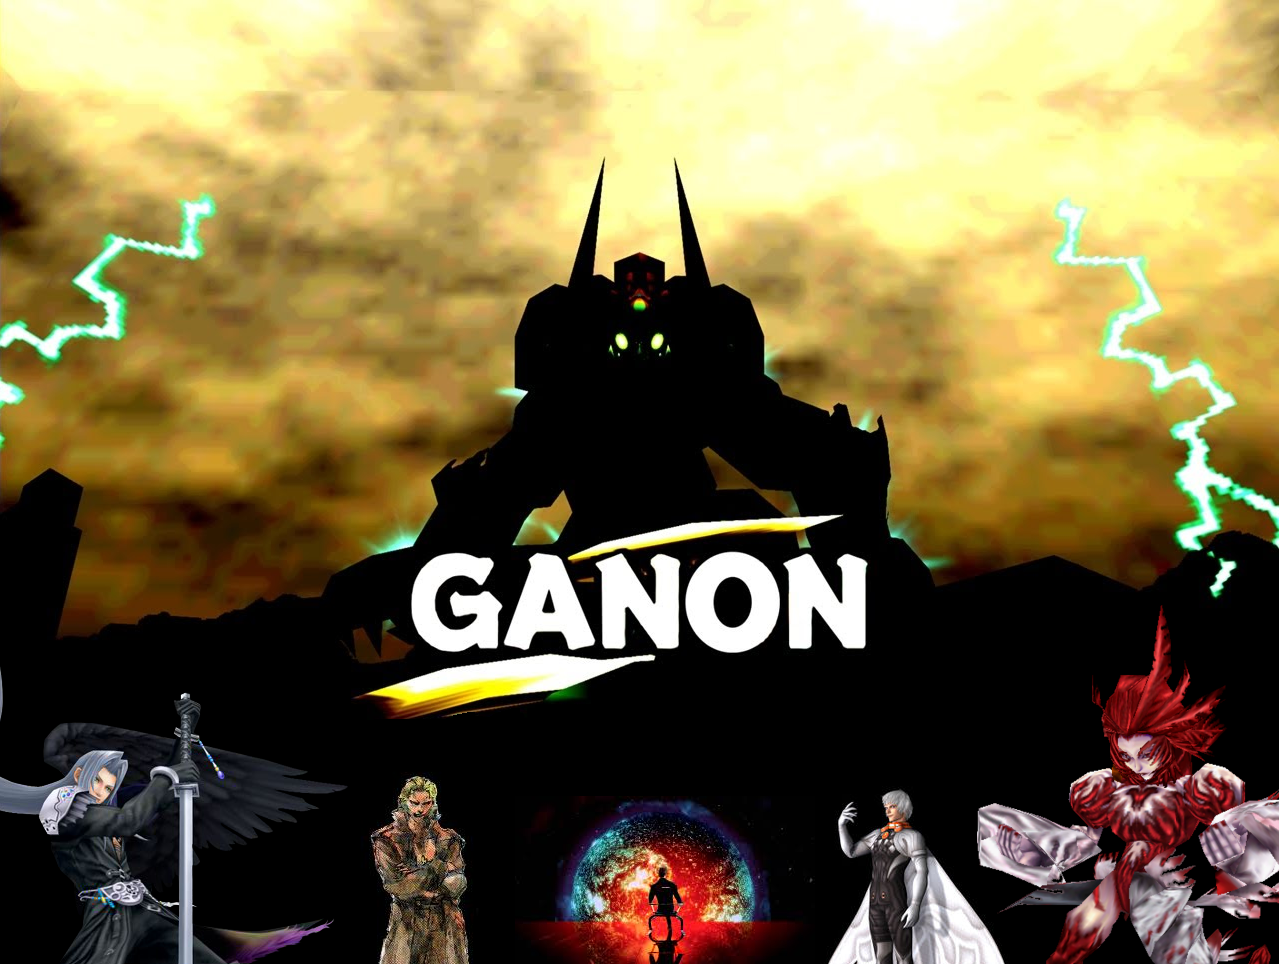 Why The Zelda Series Should Move On From Ganon Ganondorf